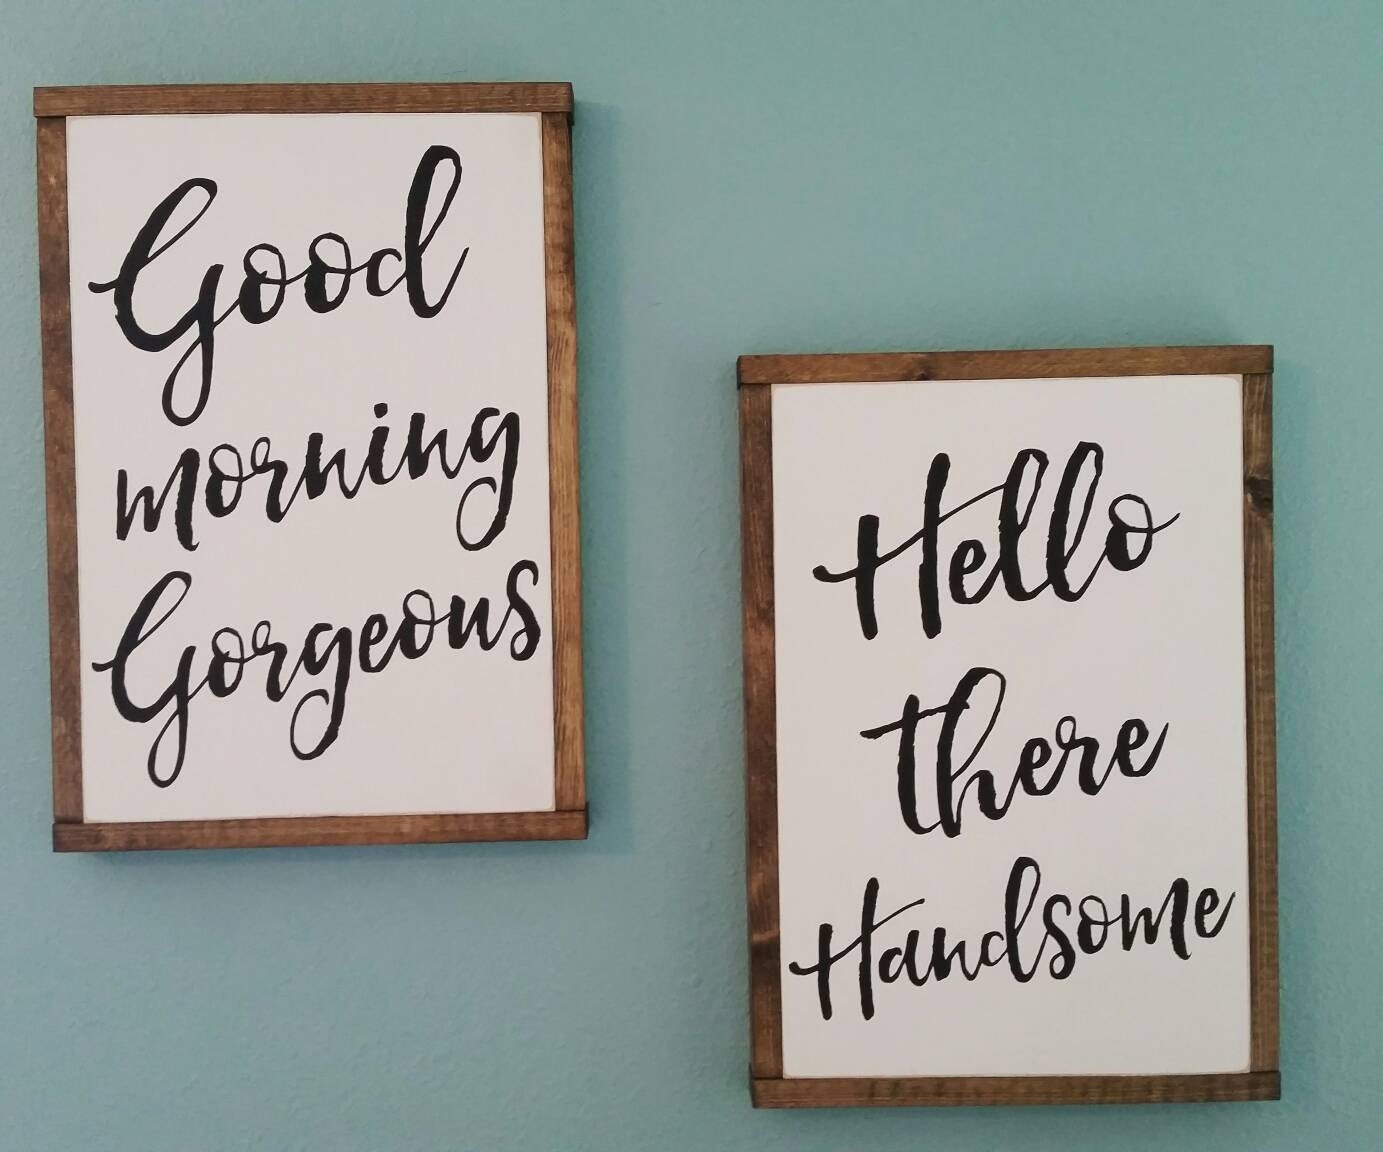 Good Morning Beautiful Wall Art : Good morning gorgeous hello there handsome painted wood